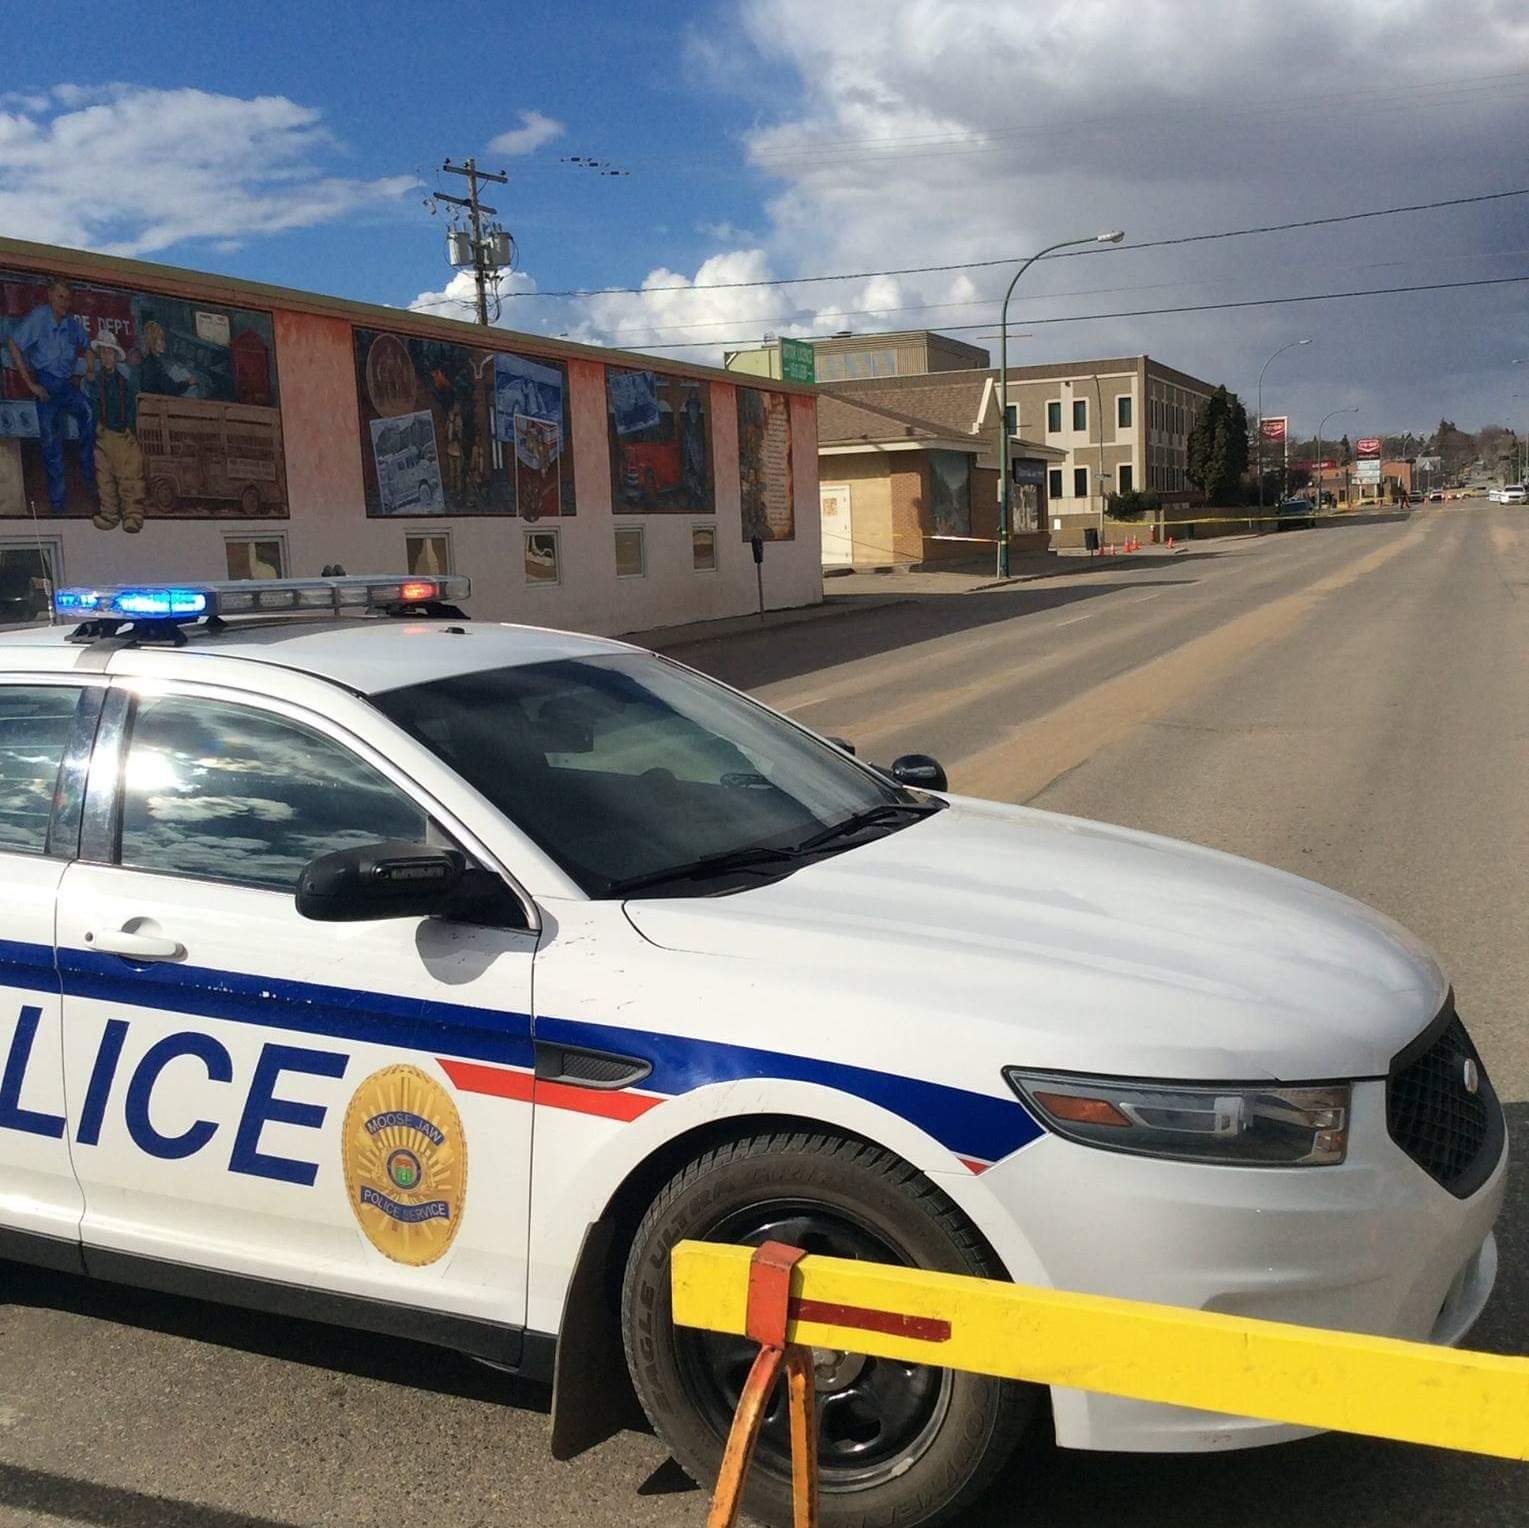 Moose Jaw Police Service vehicle deployed at a potential crime scene - MJ Independent Photo